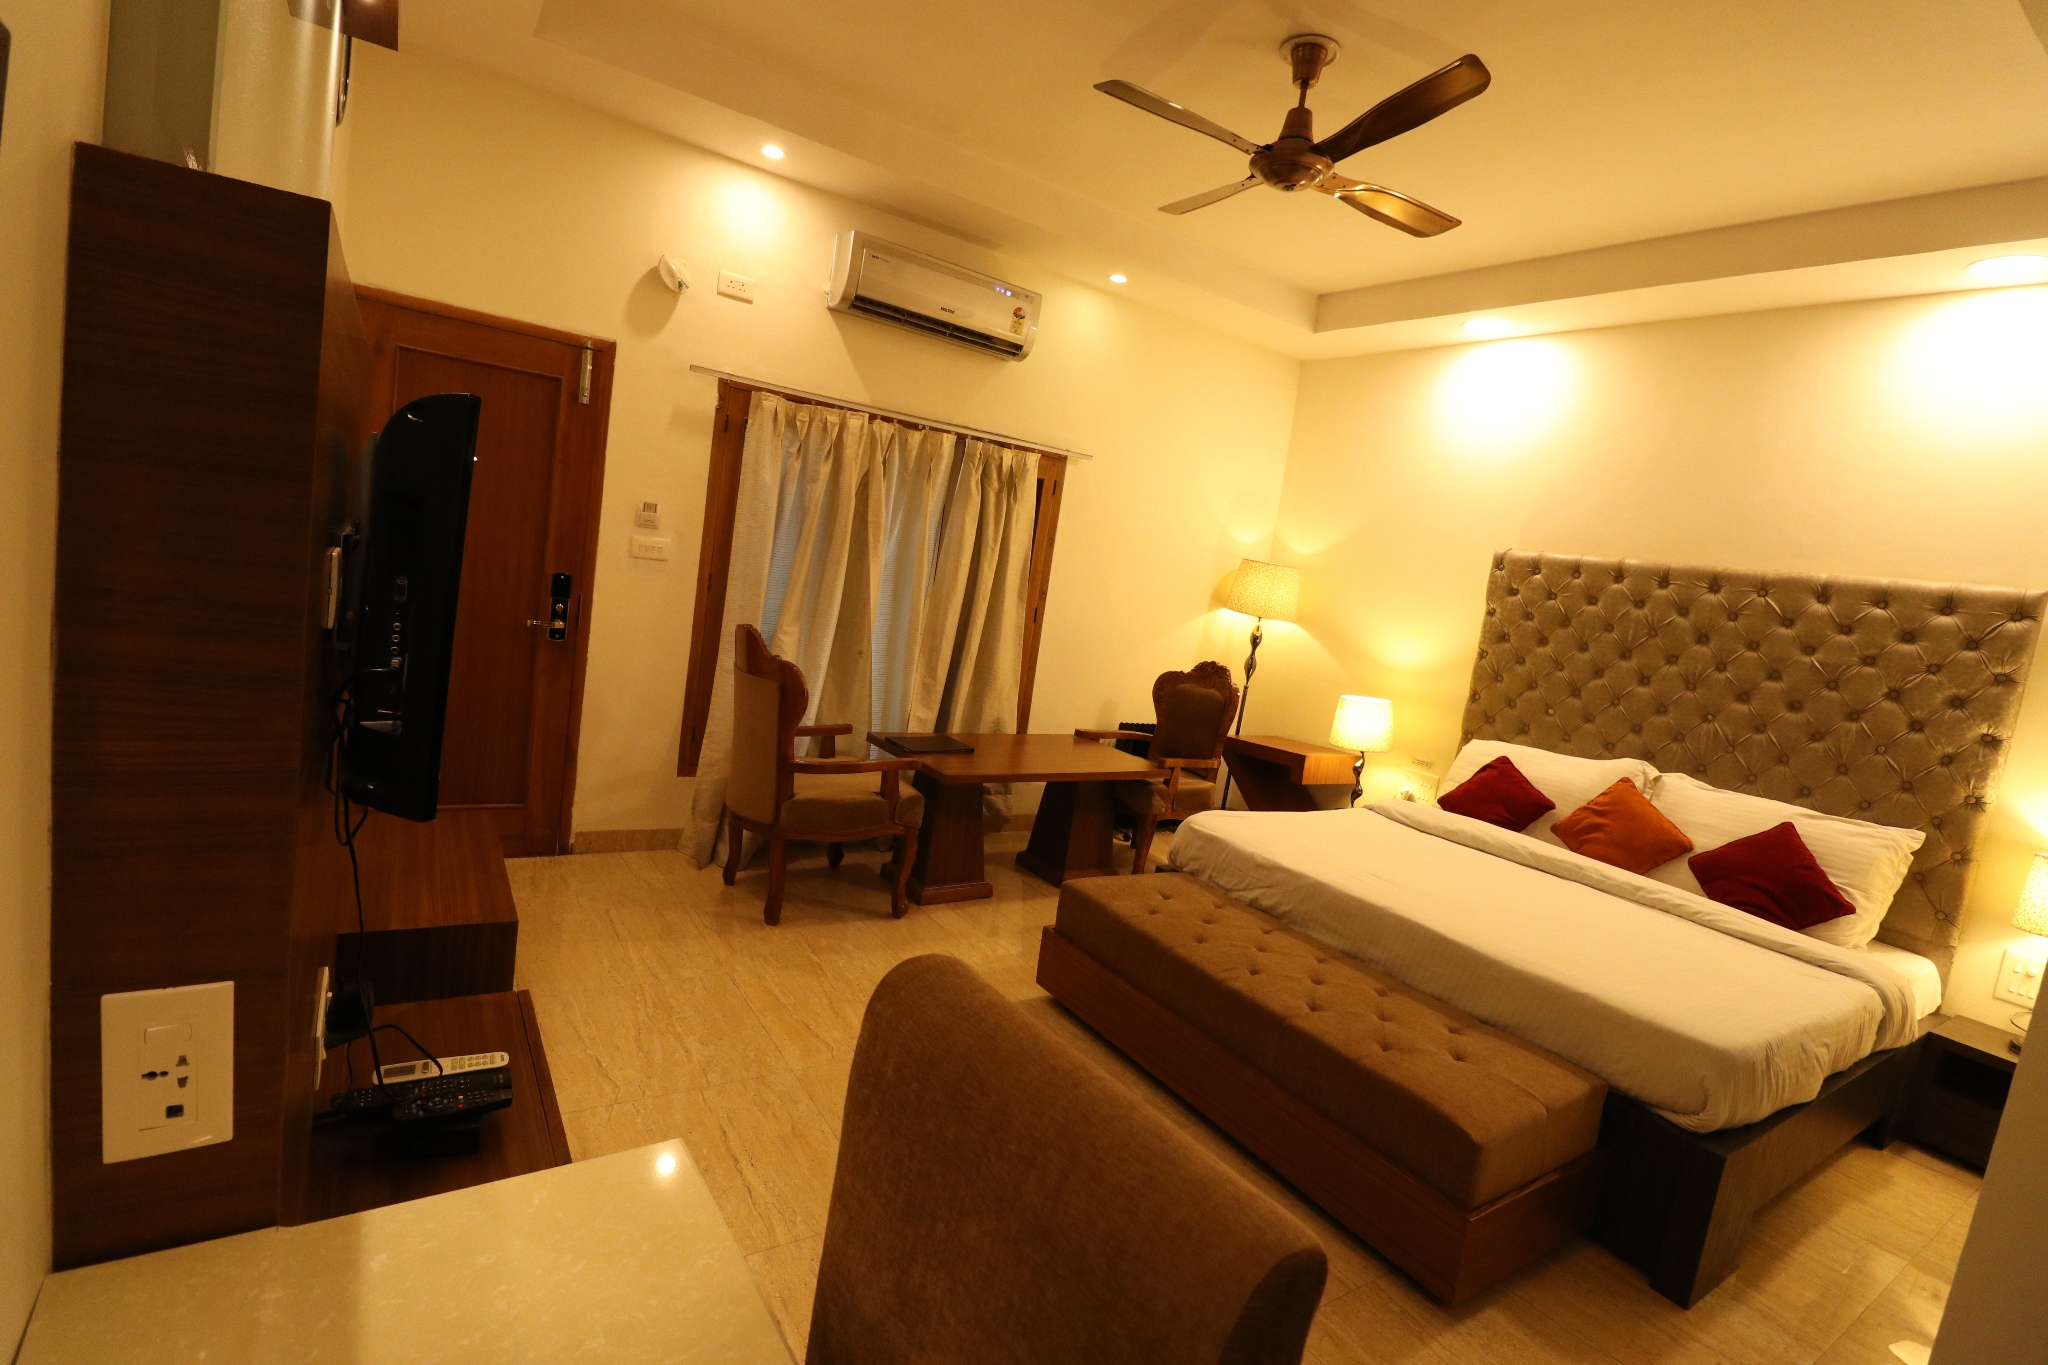 Luxury Room,                                     Hotel Mohan Continental Patiala - Budget Hotels in Patiala